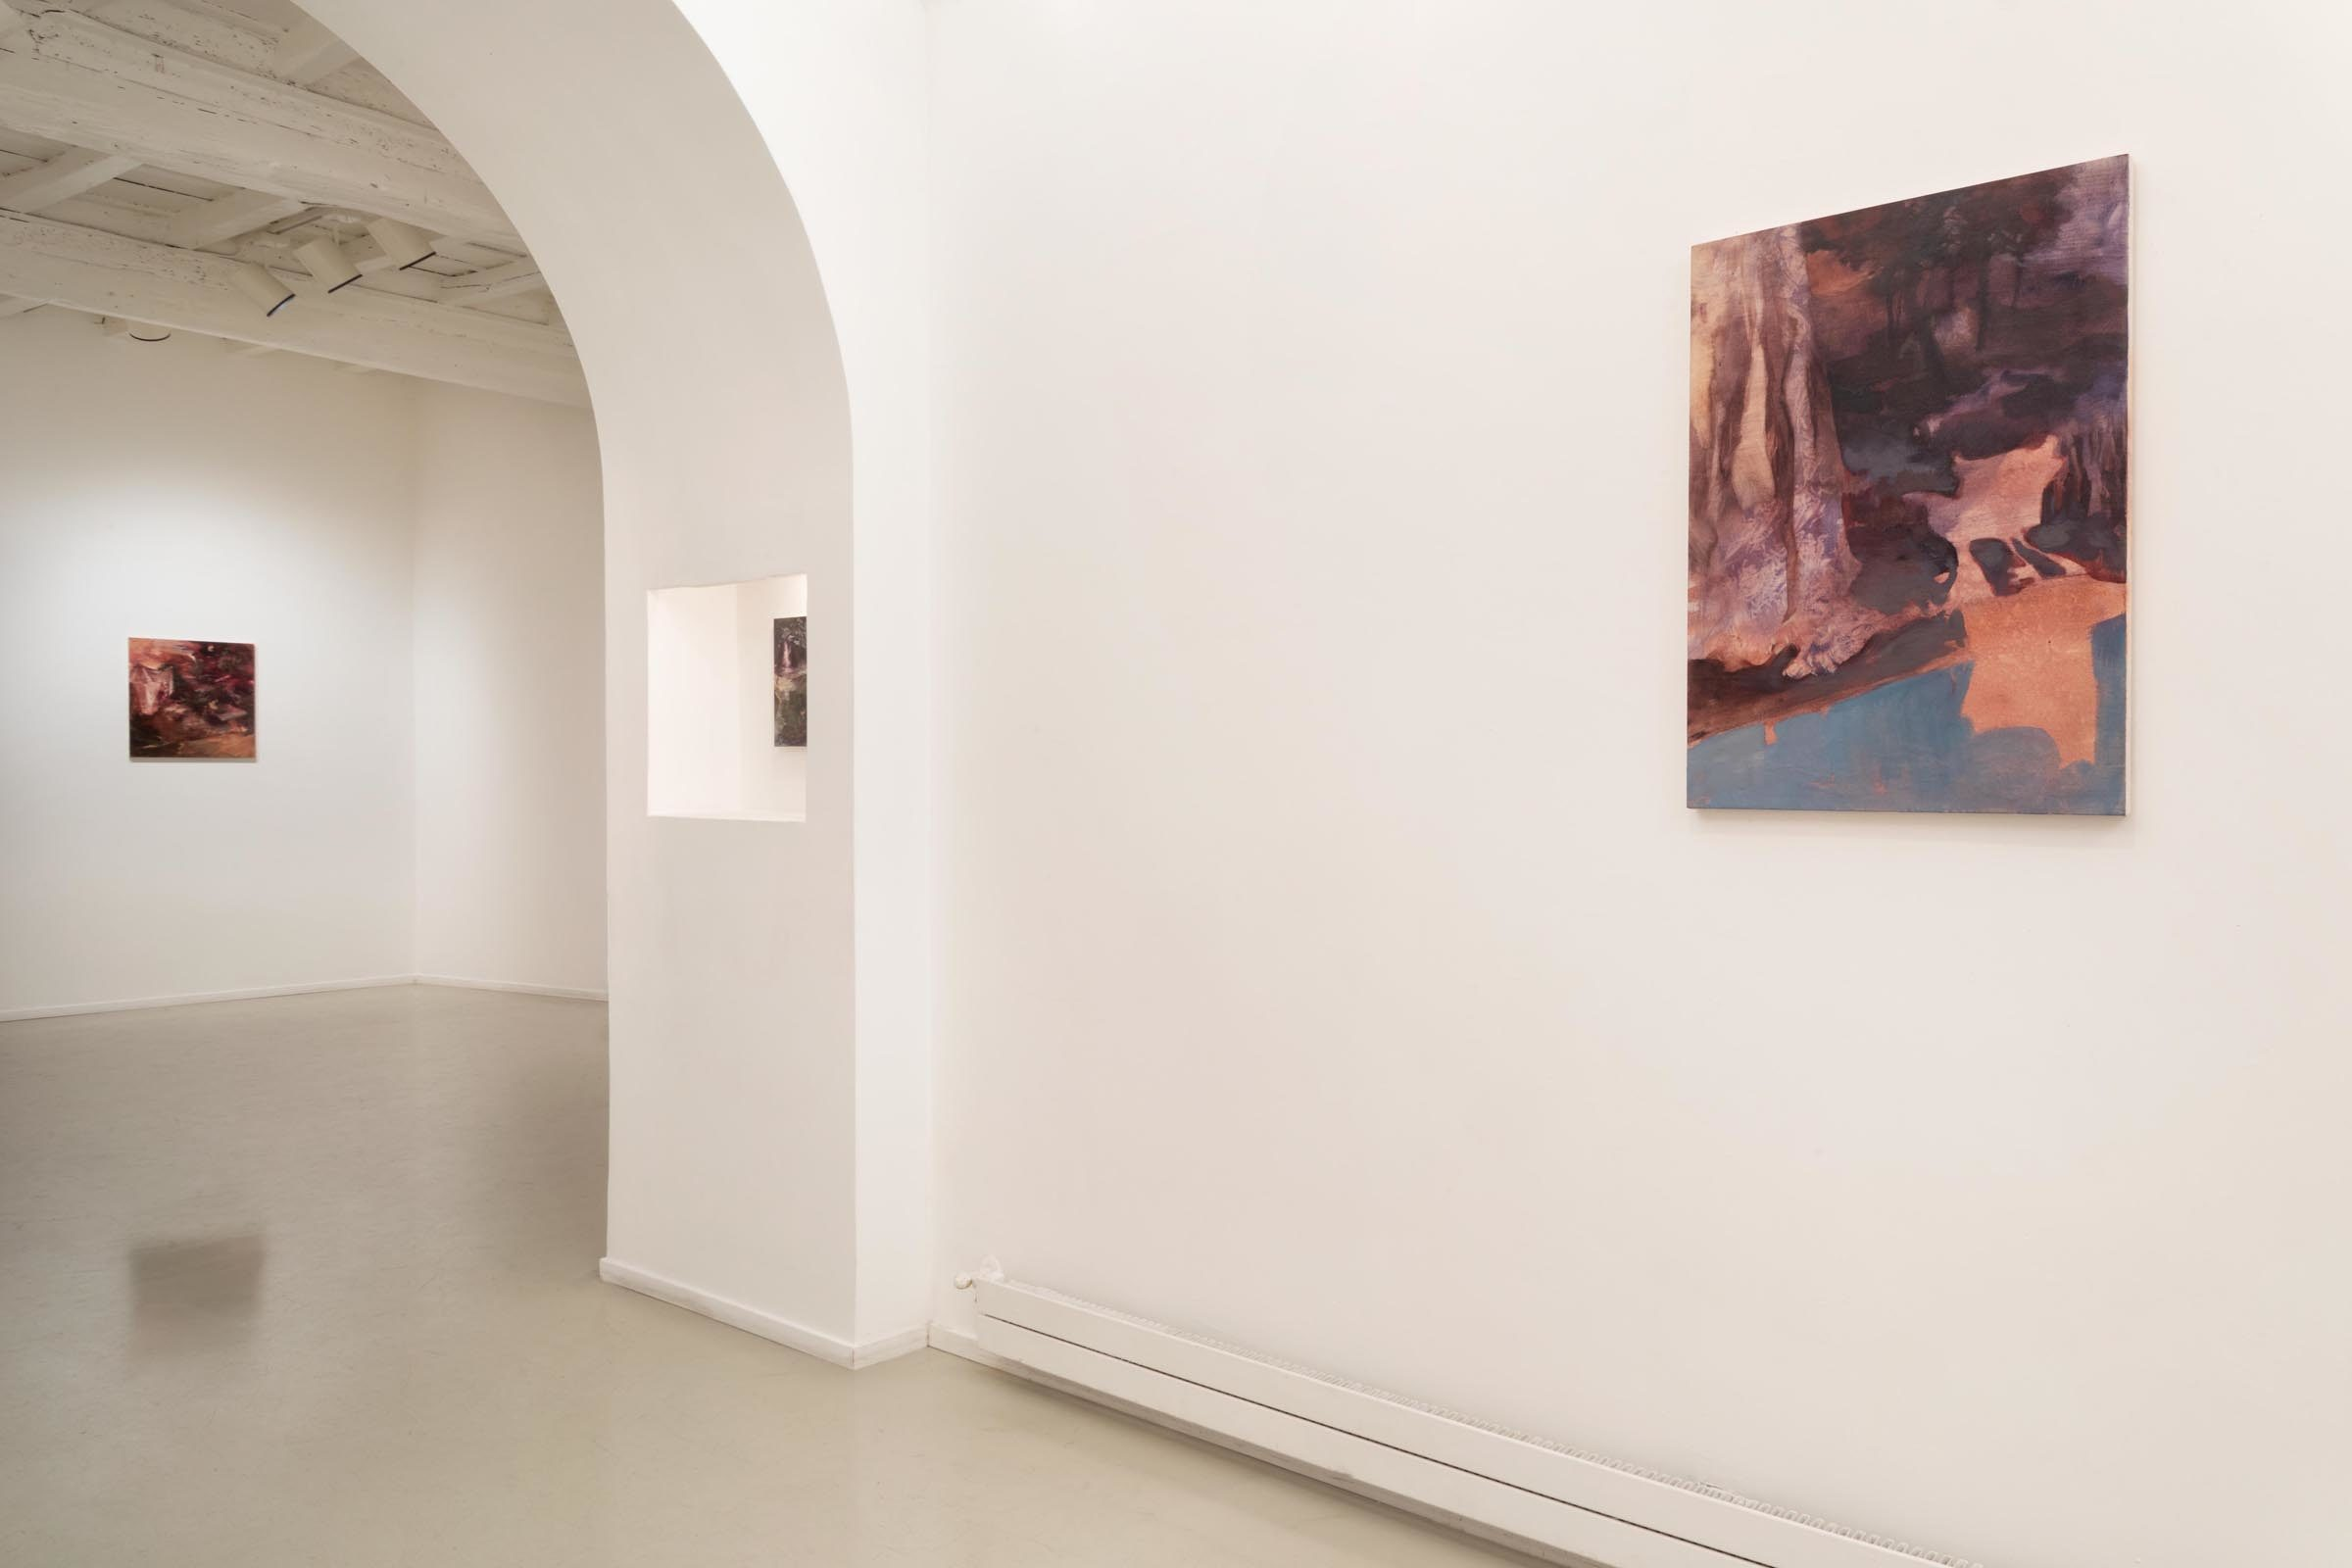 Alice Faloretti, Suspension of Disbelief, installation view, Francesca Antonini Artecontemporanea, Roma, ph. D. Molajoli